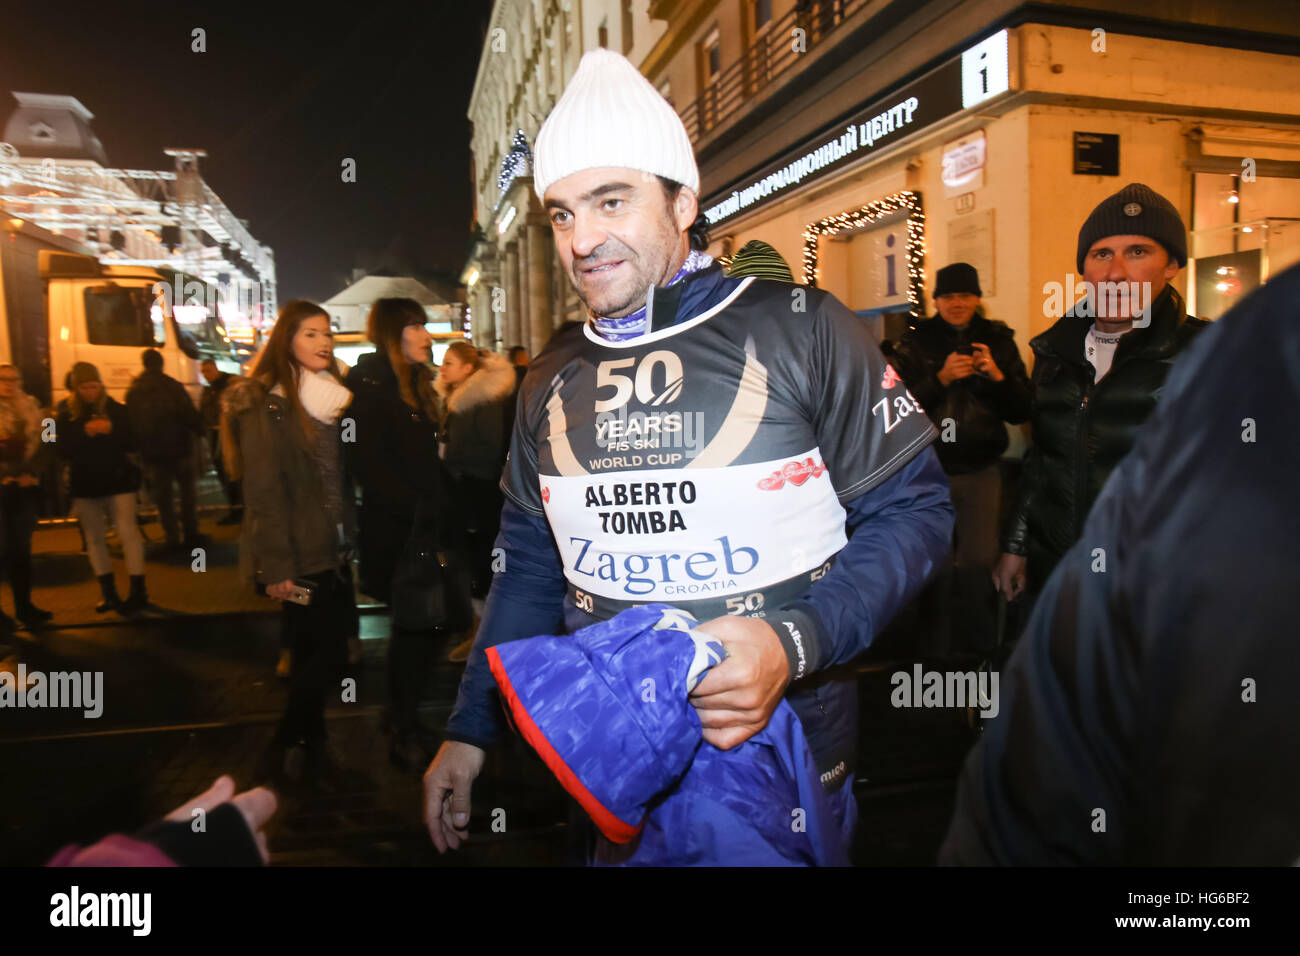 Zagreb, Croatia. 4th January, 2017. A celebration marking the 50th anniversary of the FIS World Cup in alpine skiing. - Stock Image